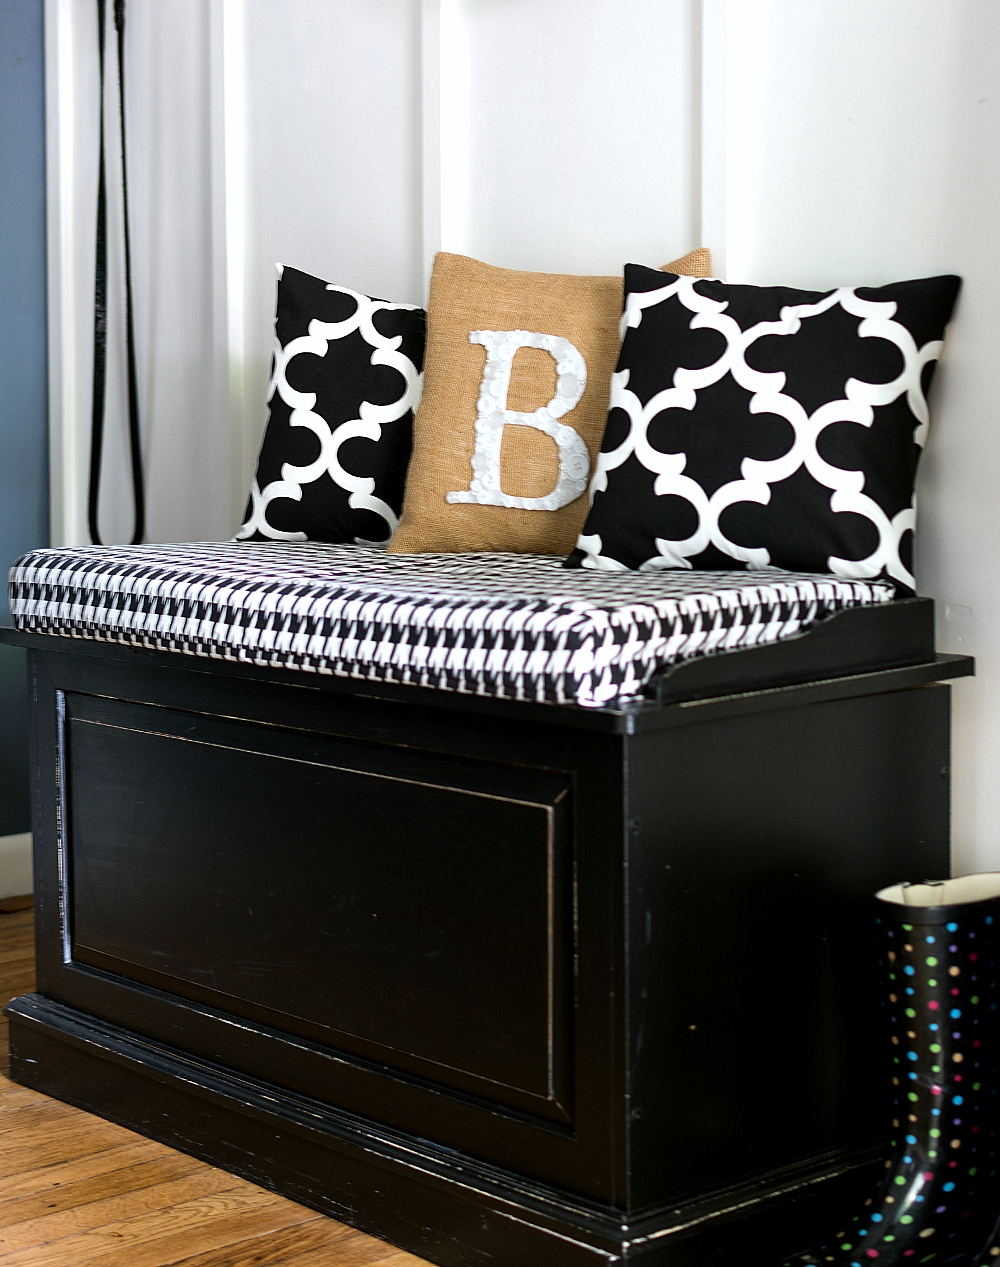 Black Bench with Houndstooth Black & White Fabric and pillows